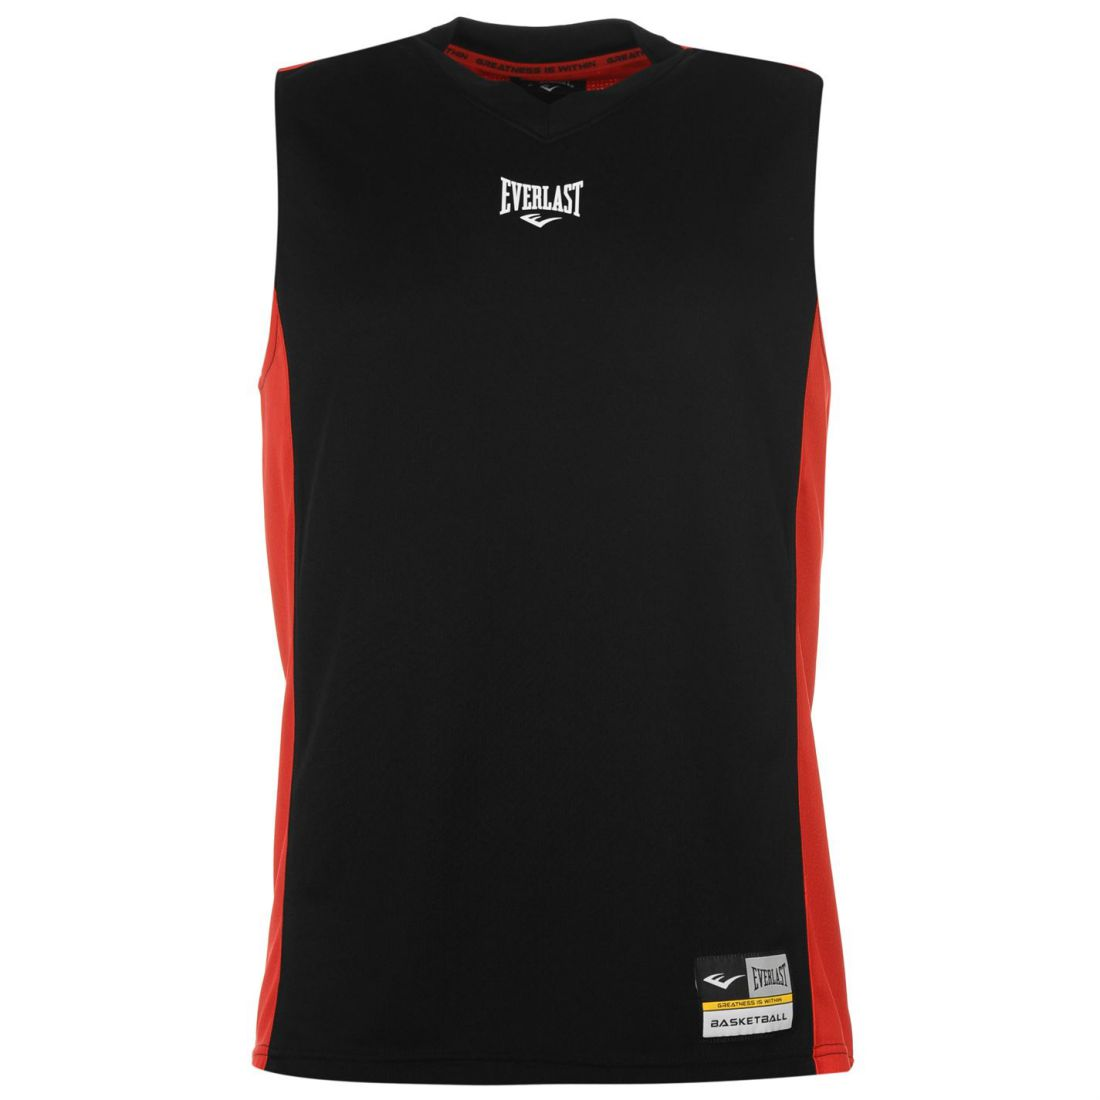 9b92852e465 Image is loading Everlast-Mens-Basketball-Jersey-V-Neck-Sleeveless-Sports-